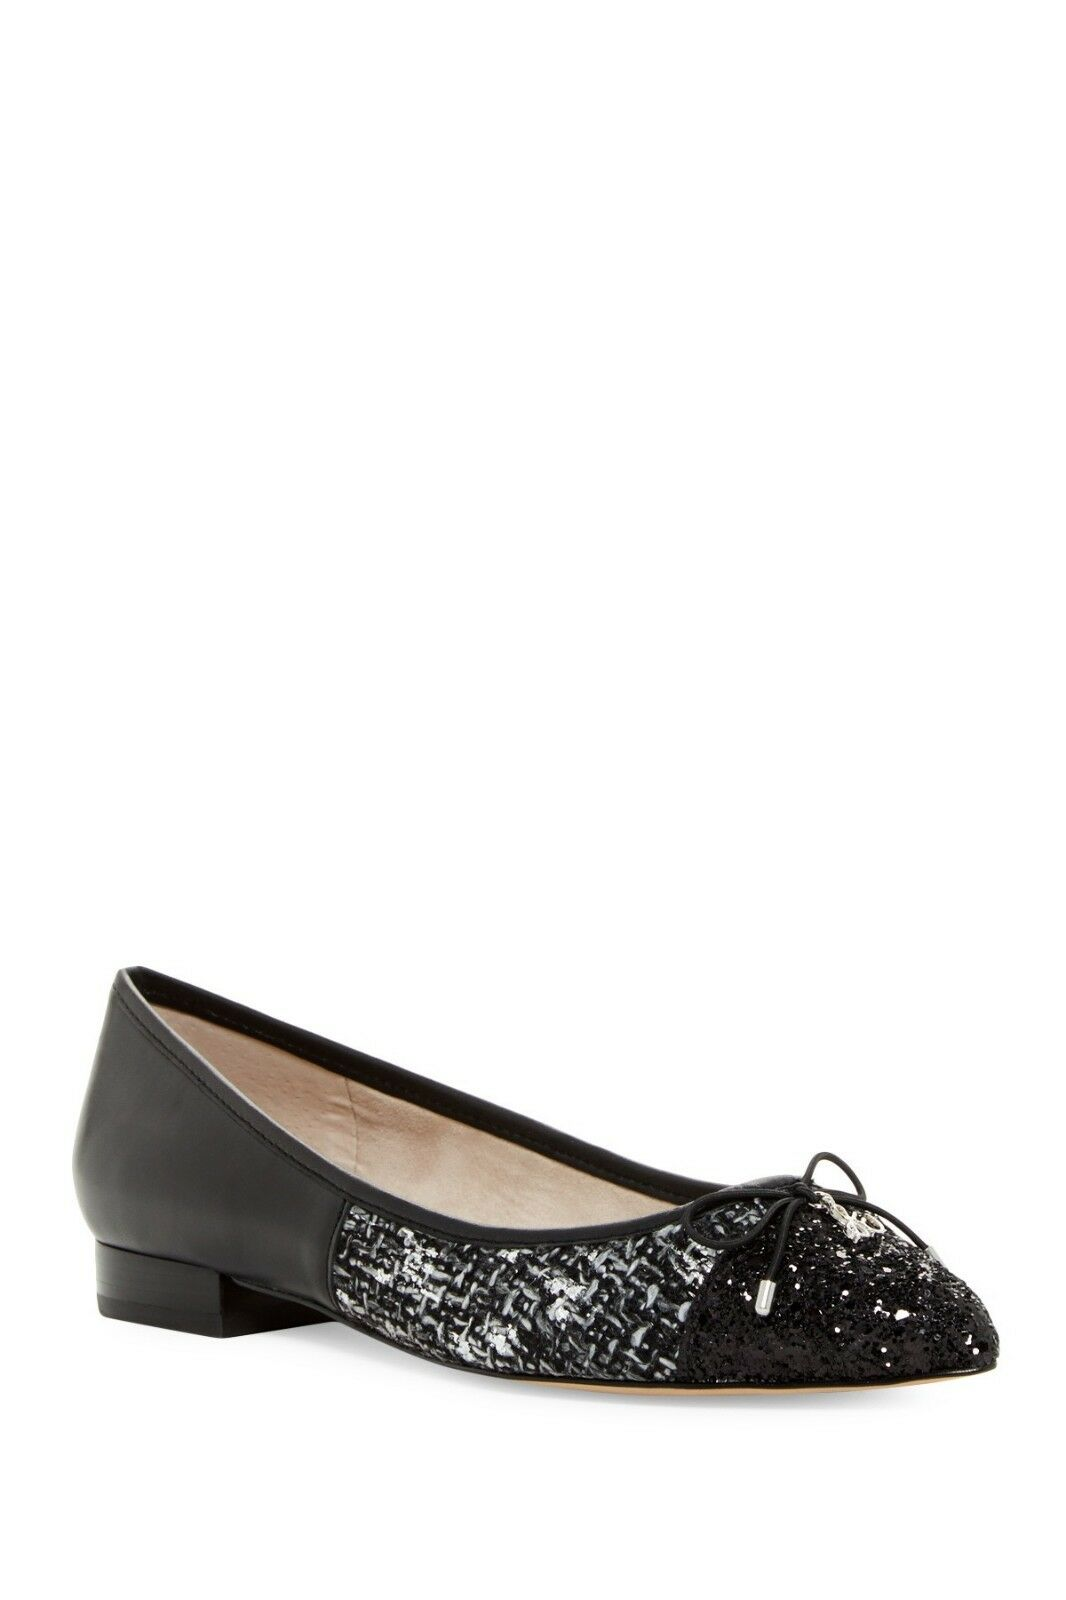 New Sam Edelman Lilly Pointed-Toe Flats women's shoes